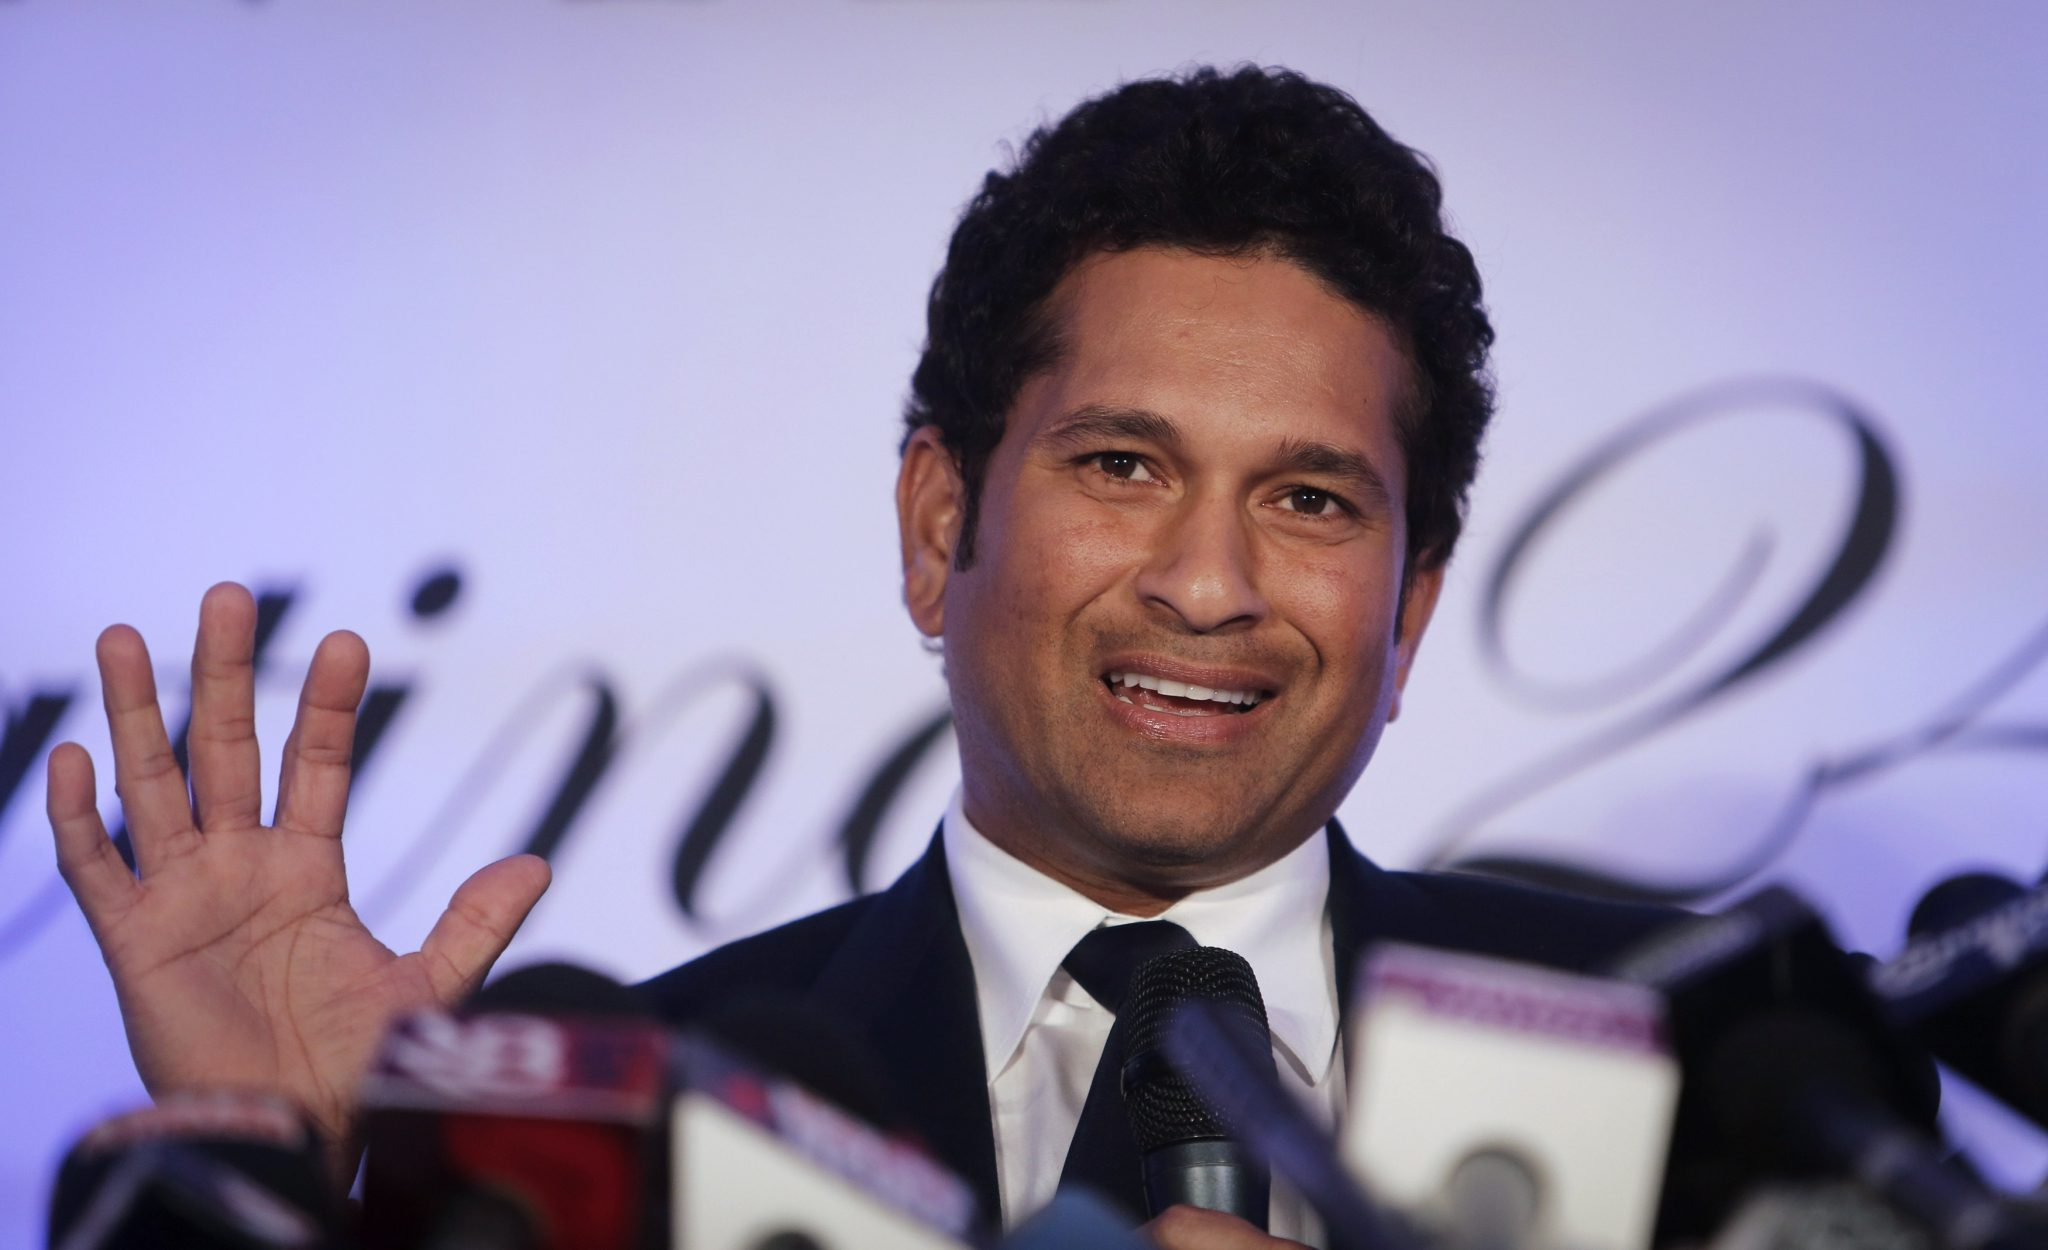 Sachin Tendulkar makes a shocking revelation about his biopic